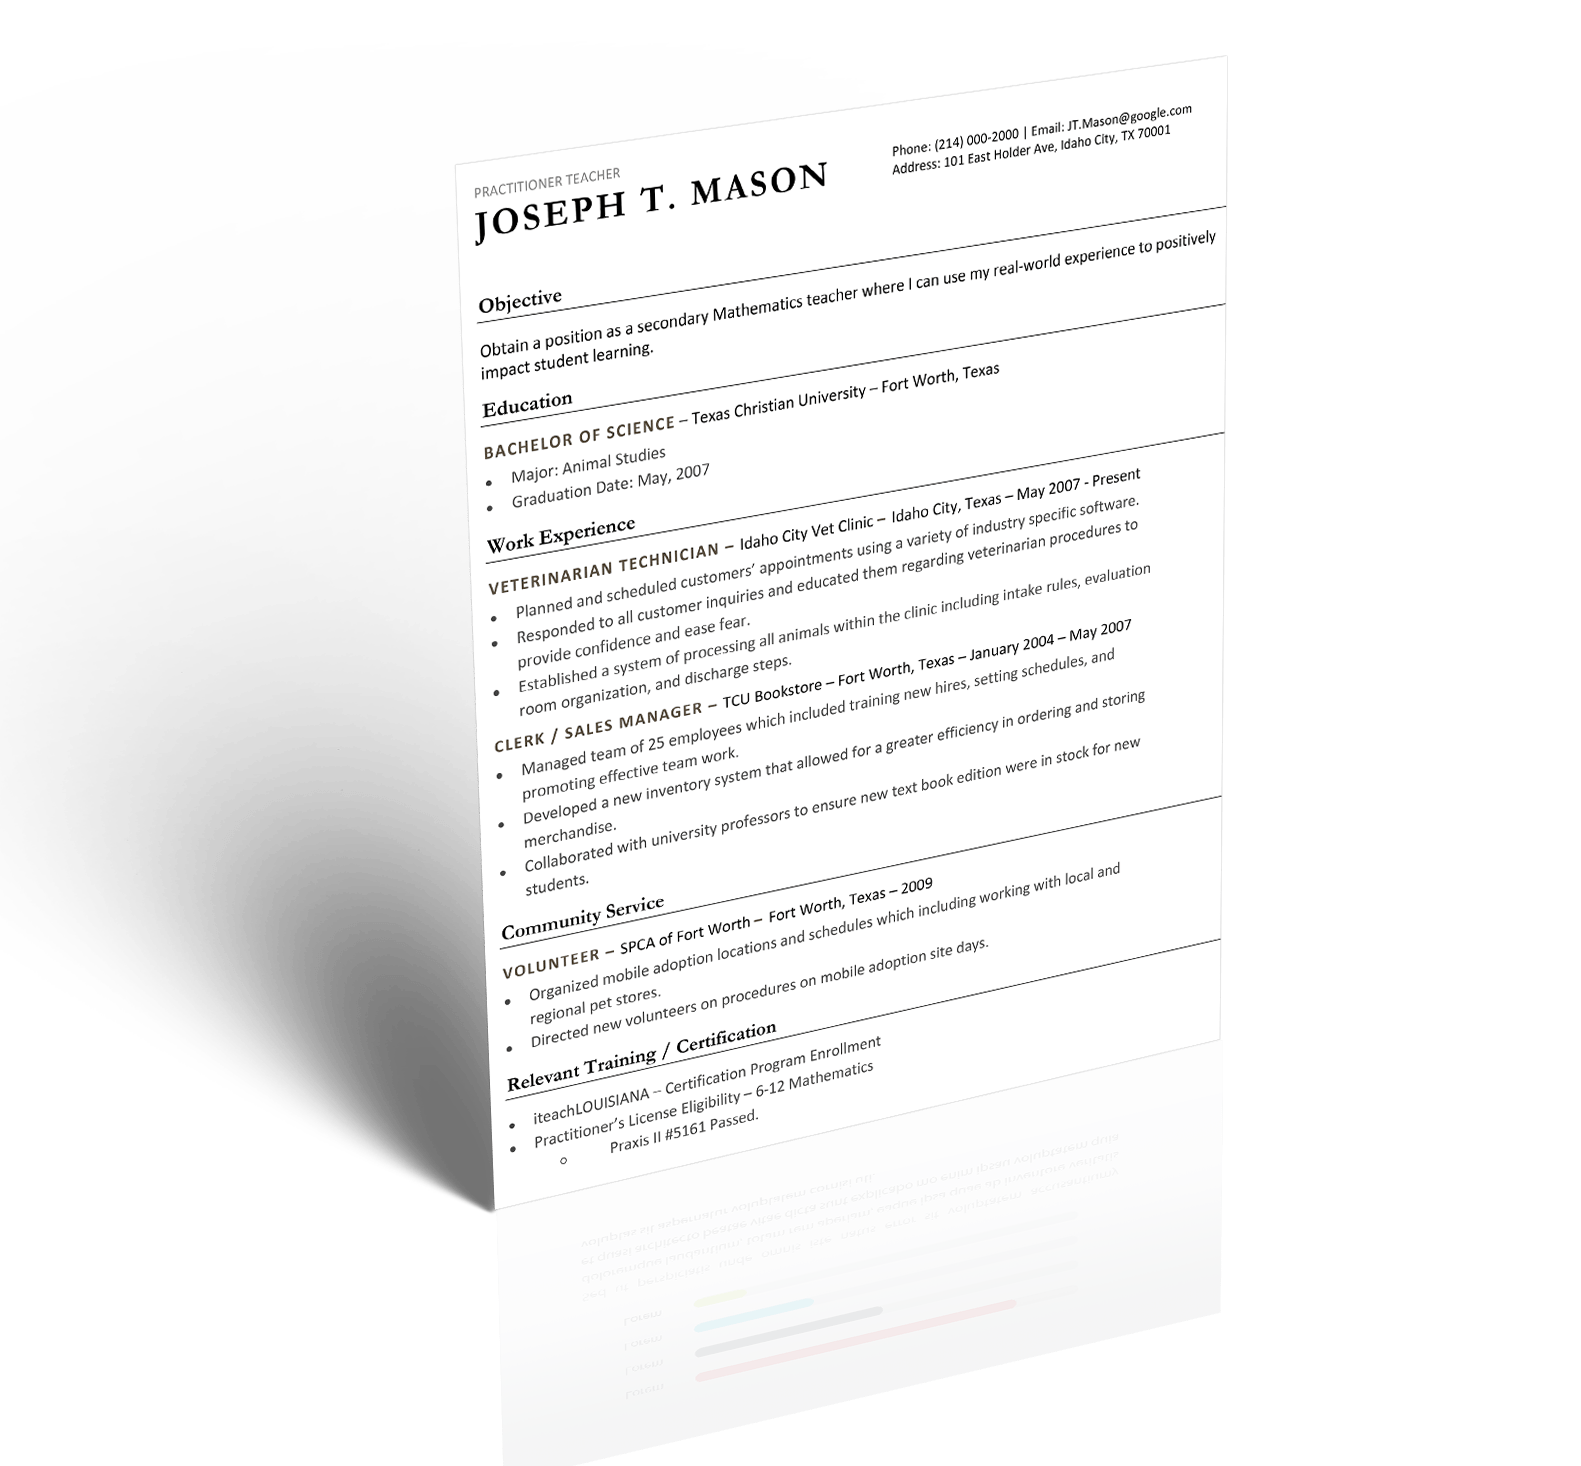 Resume Mockup Teacher Resume 5 Minute Guide To Writing The Perfect Resume